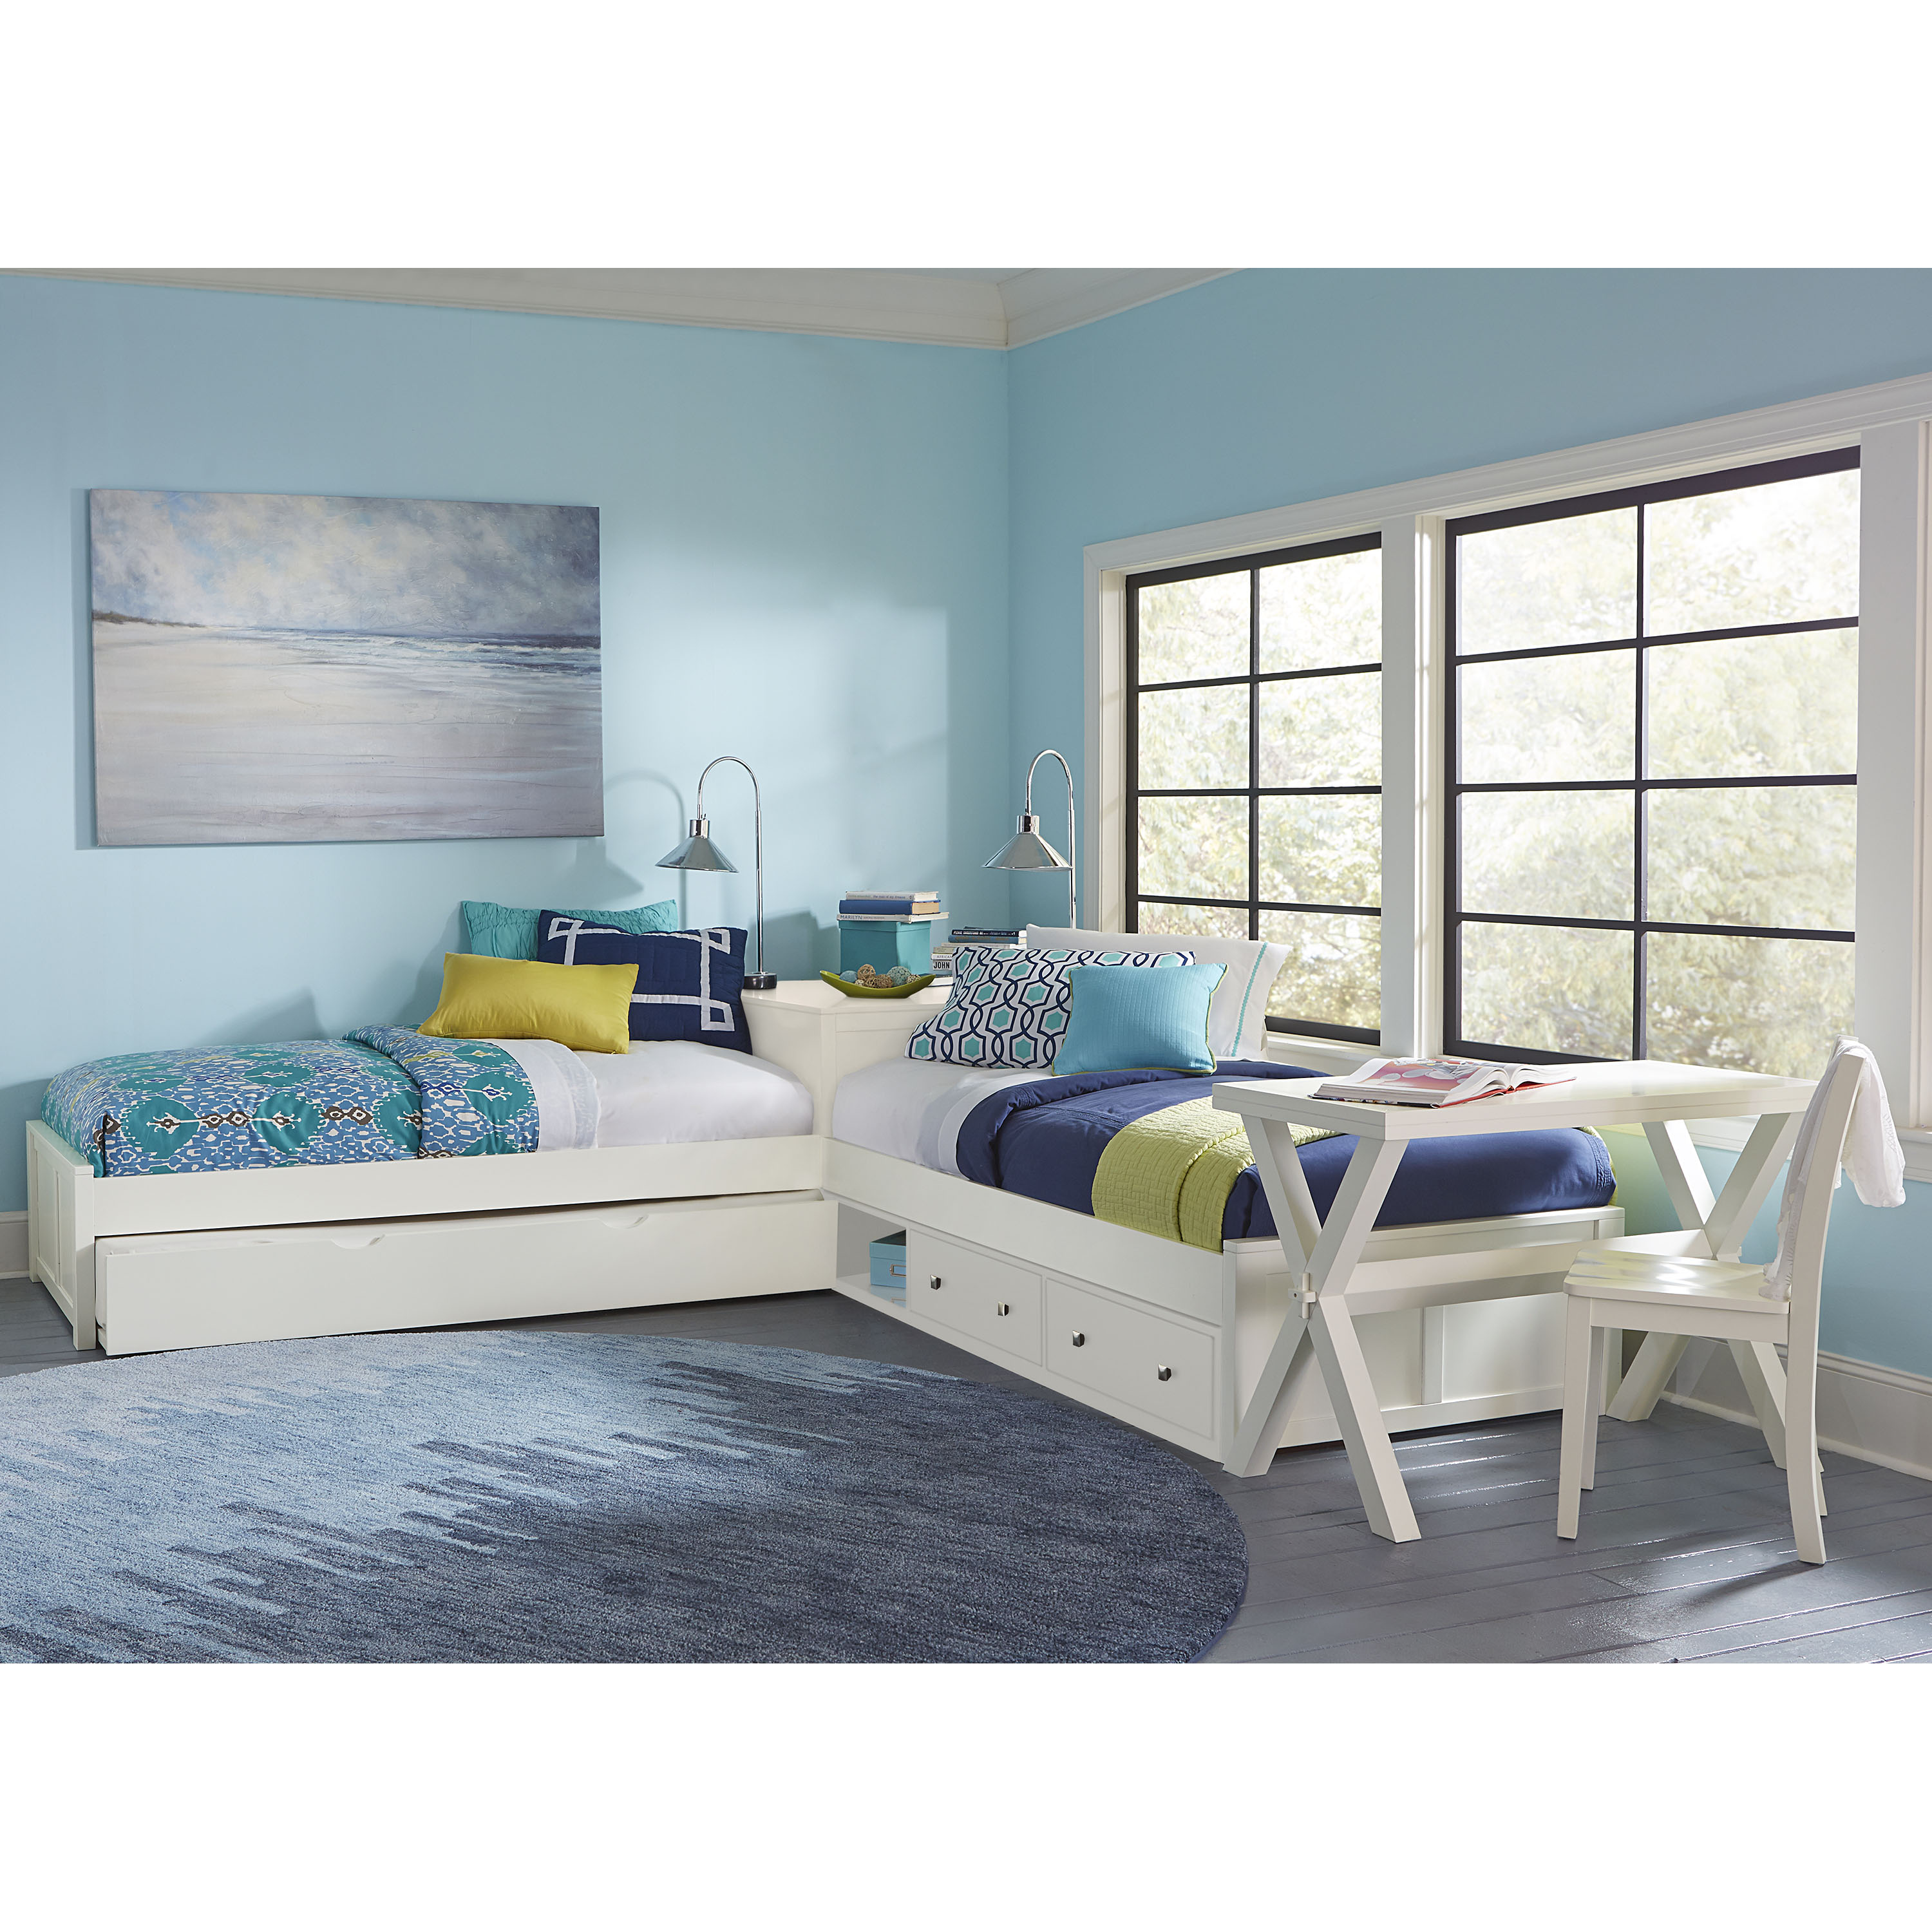 Hillsdale Pulse L-Shaped Twin Bed with Storage and Trundle, Multiple Colors